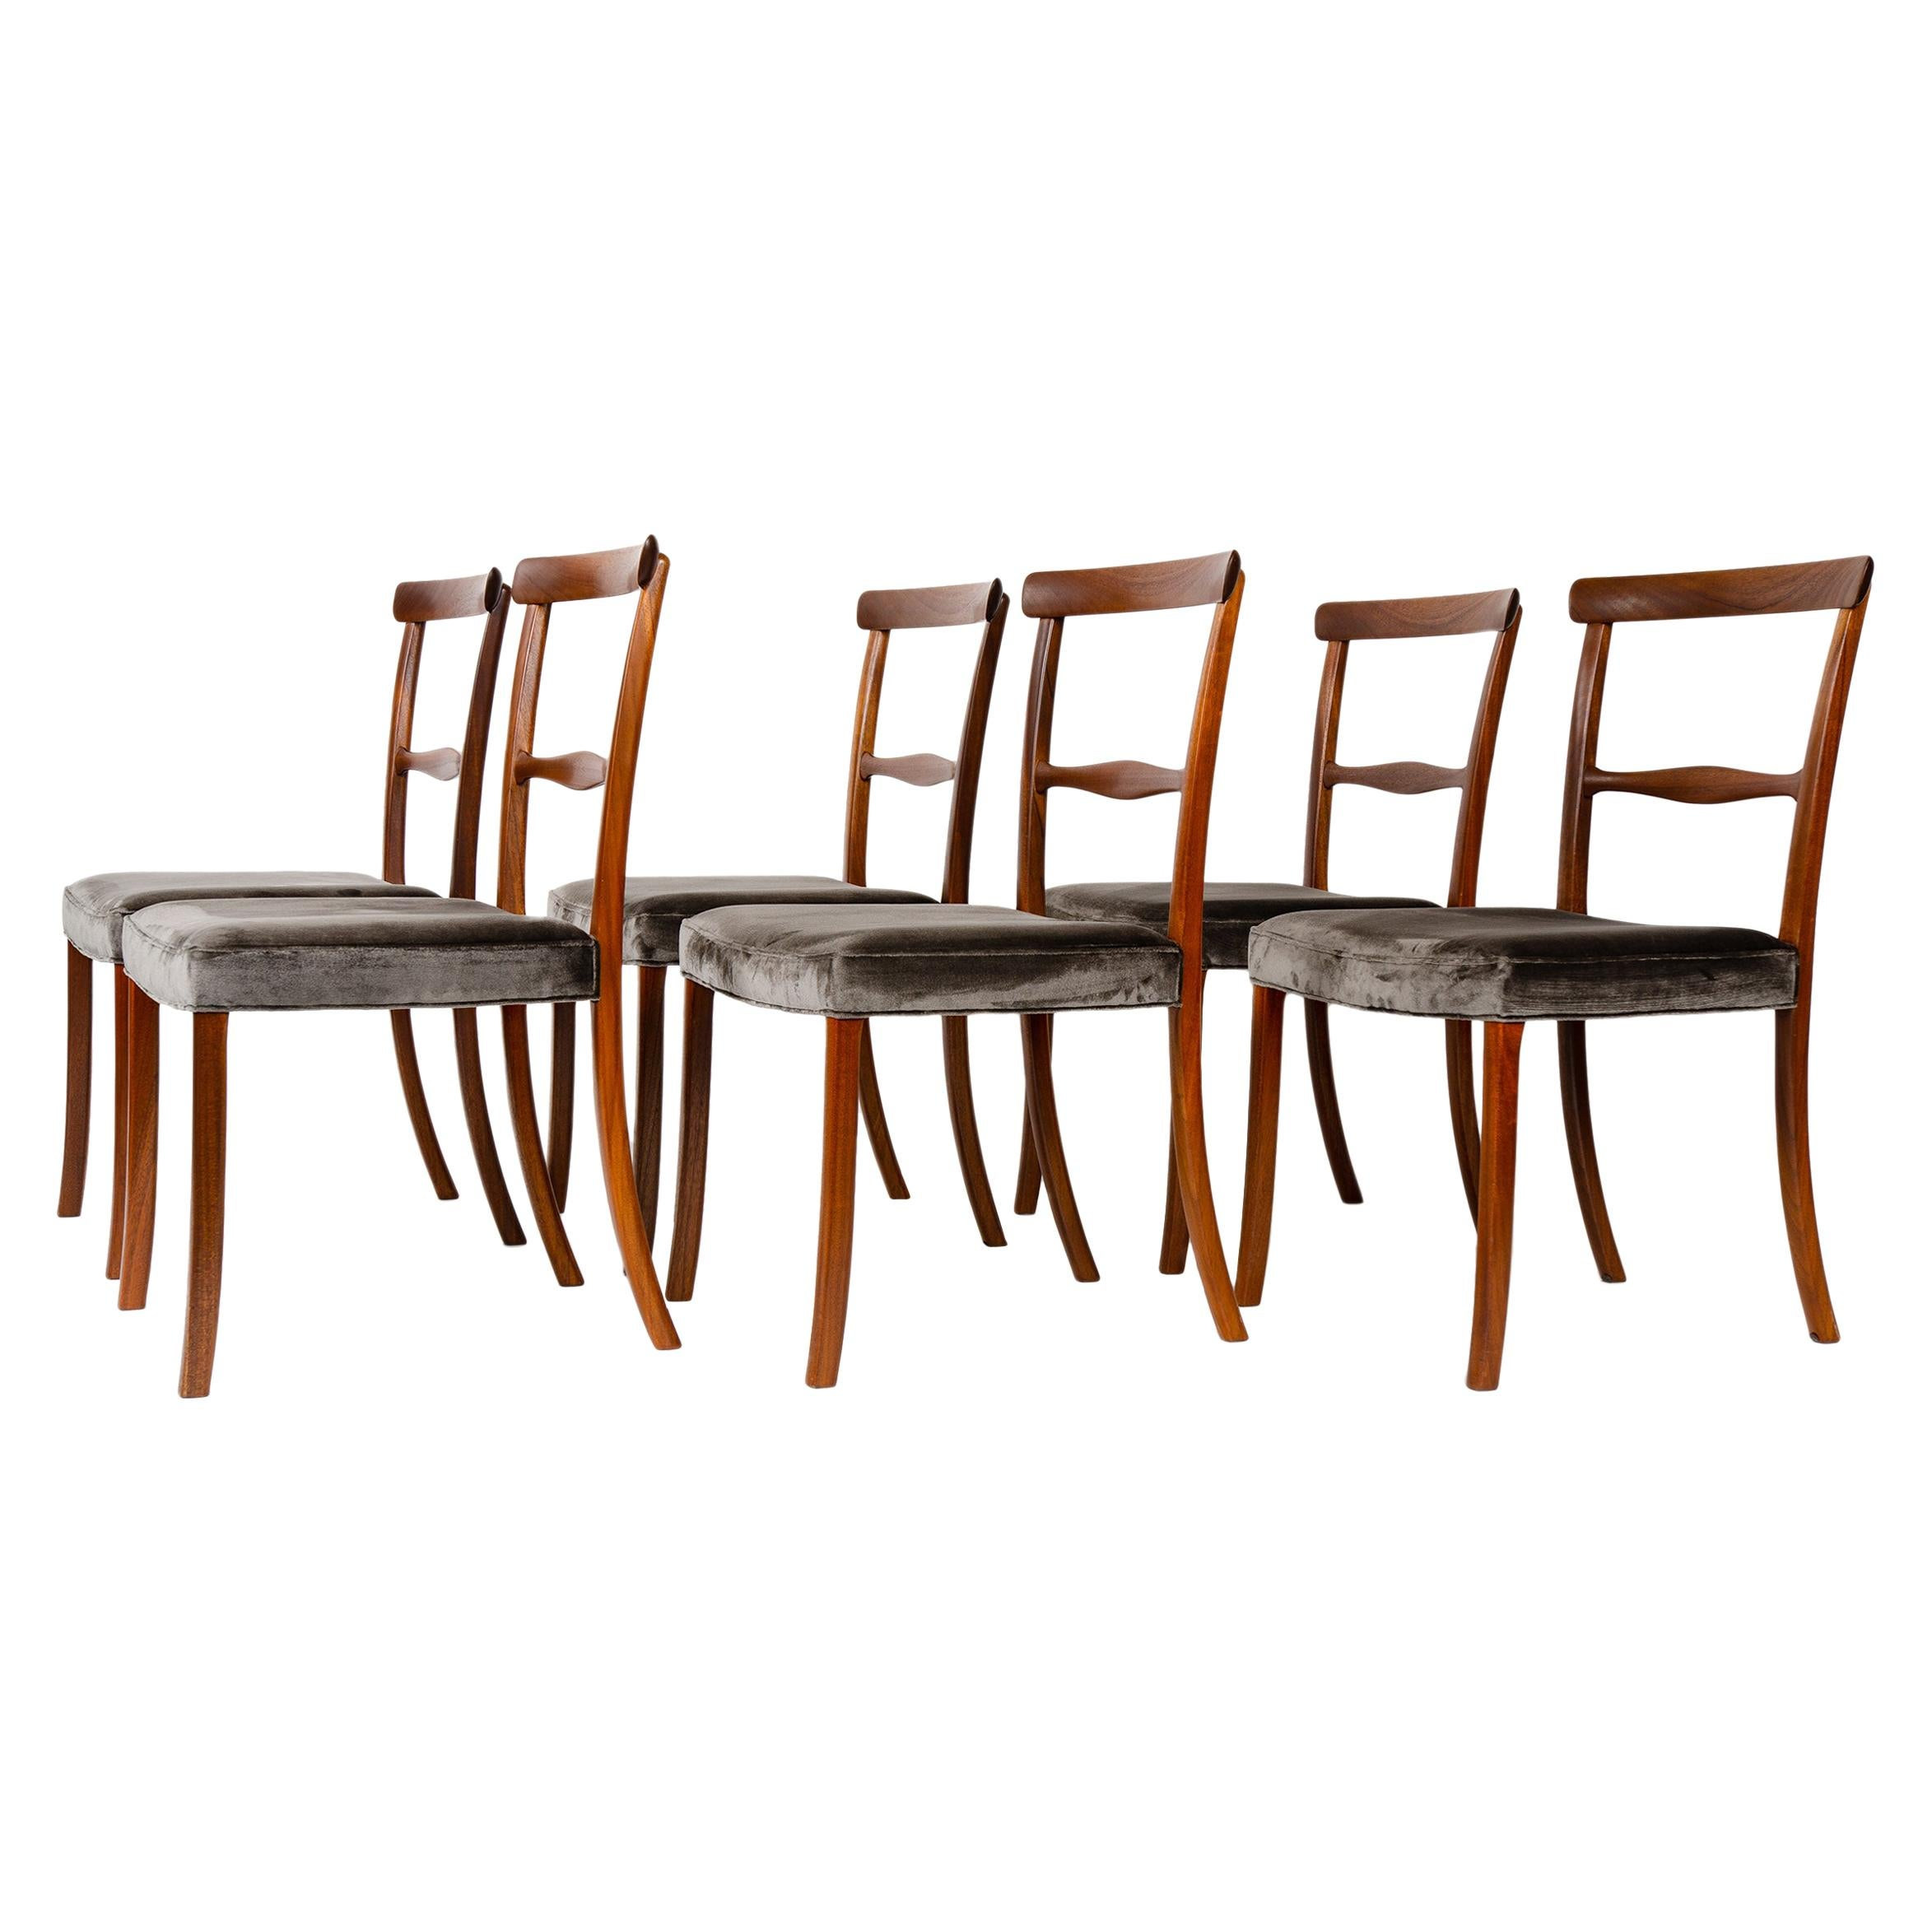 1960s Danish Set of 6 Dining Chairs by Ole Wanscher for A.J. Iversen